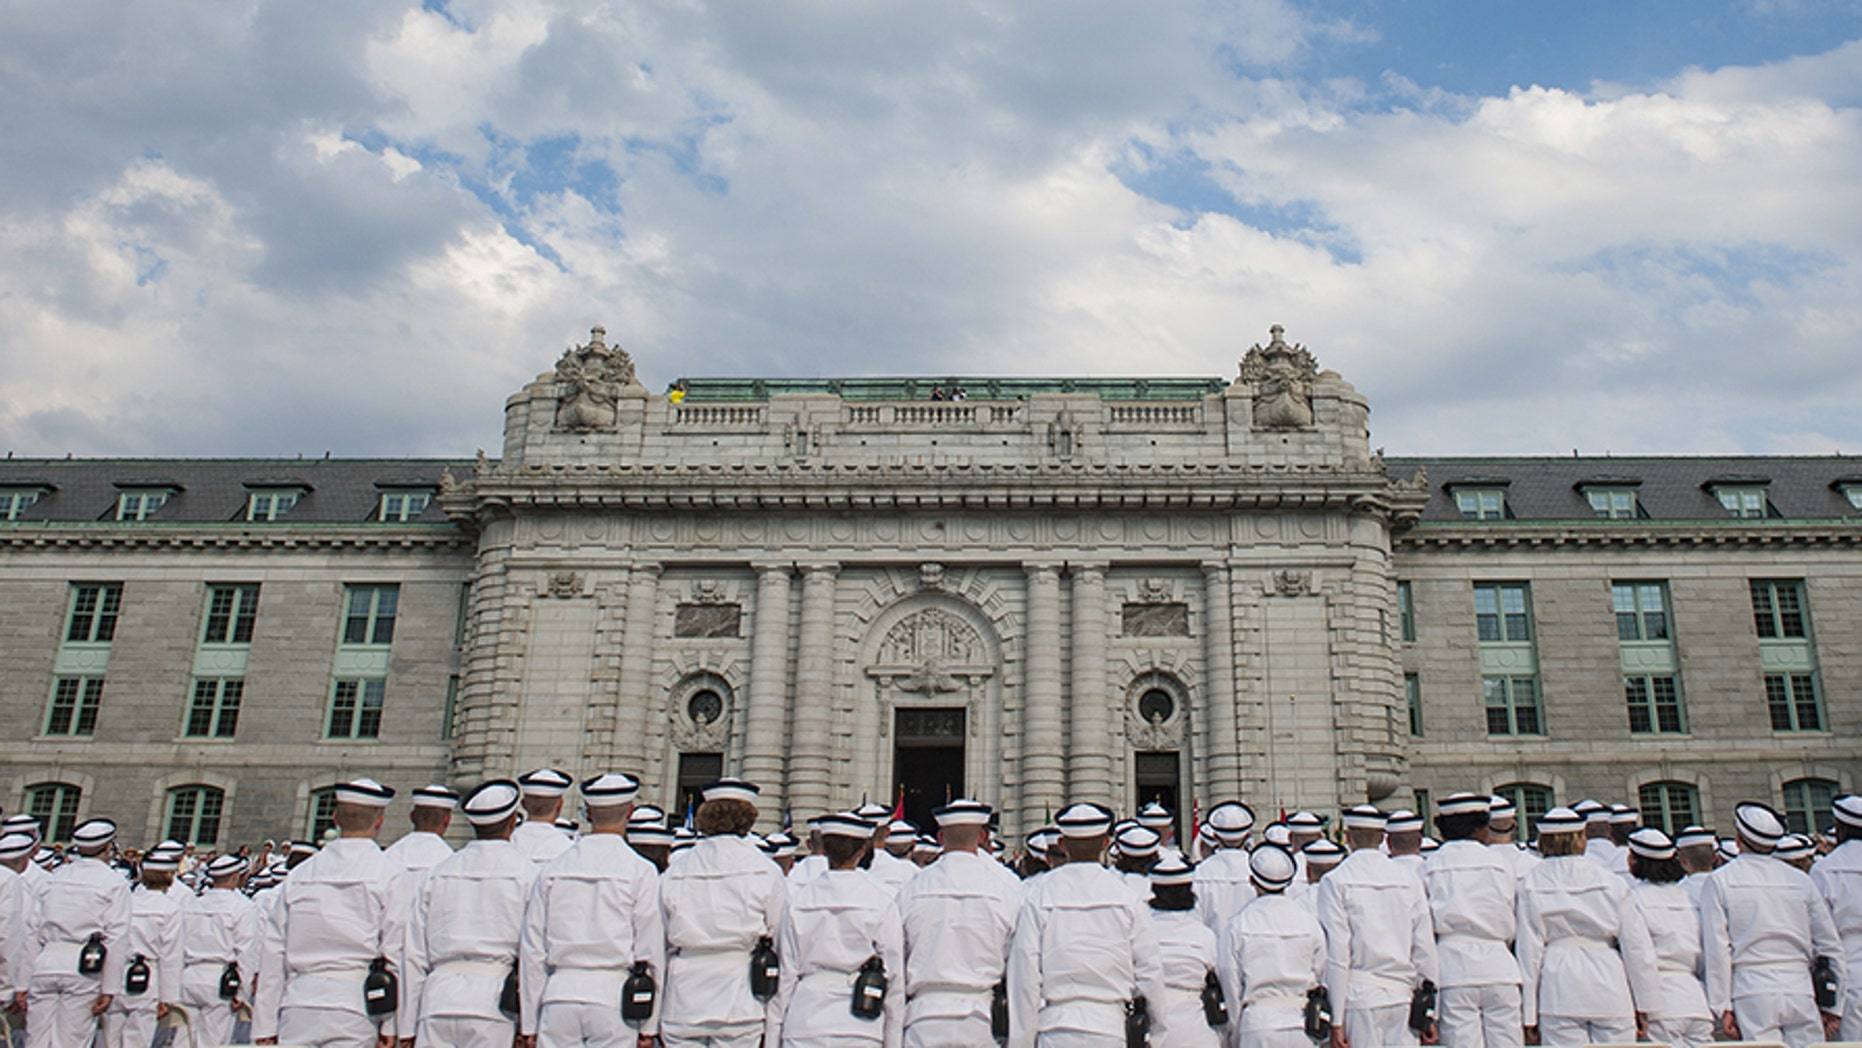 The Navy is investigating allegations of a drug ring at the U.S. Naval Academy in Annapolis, Md.